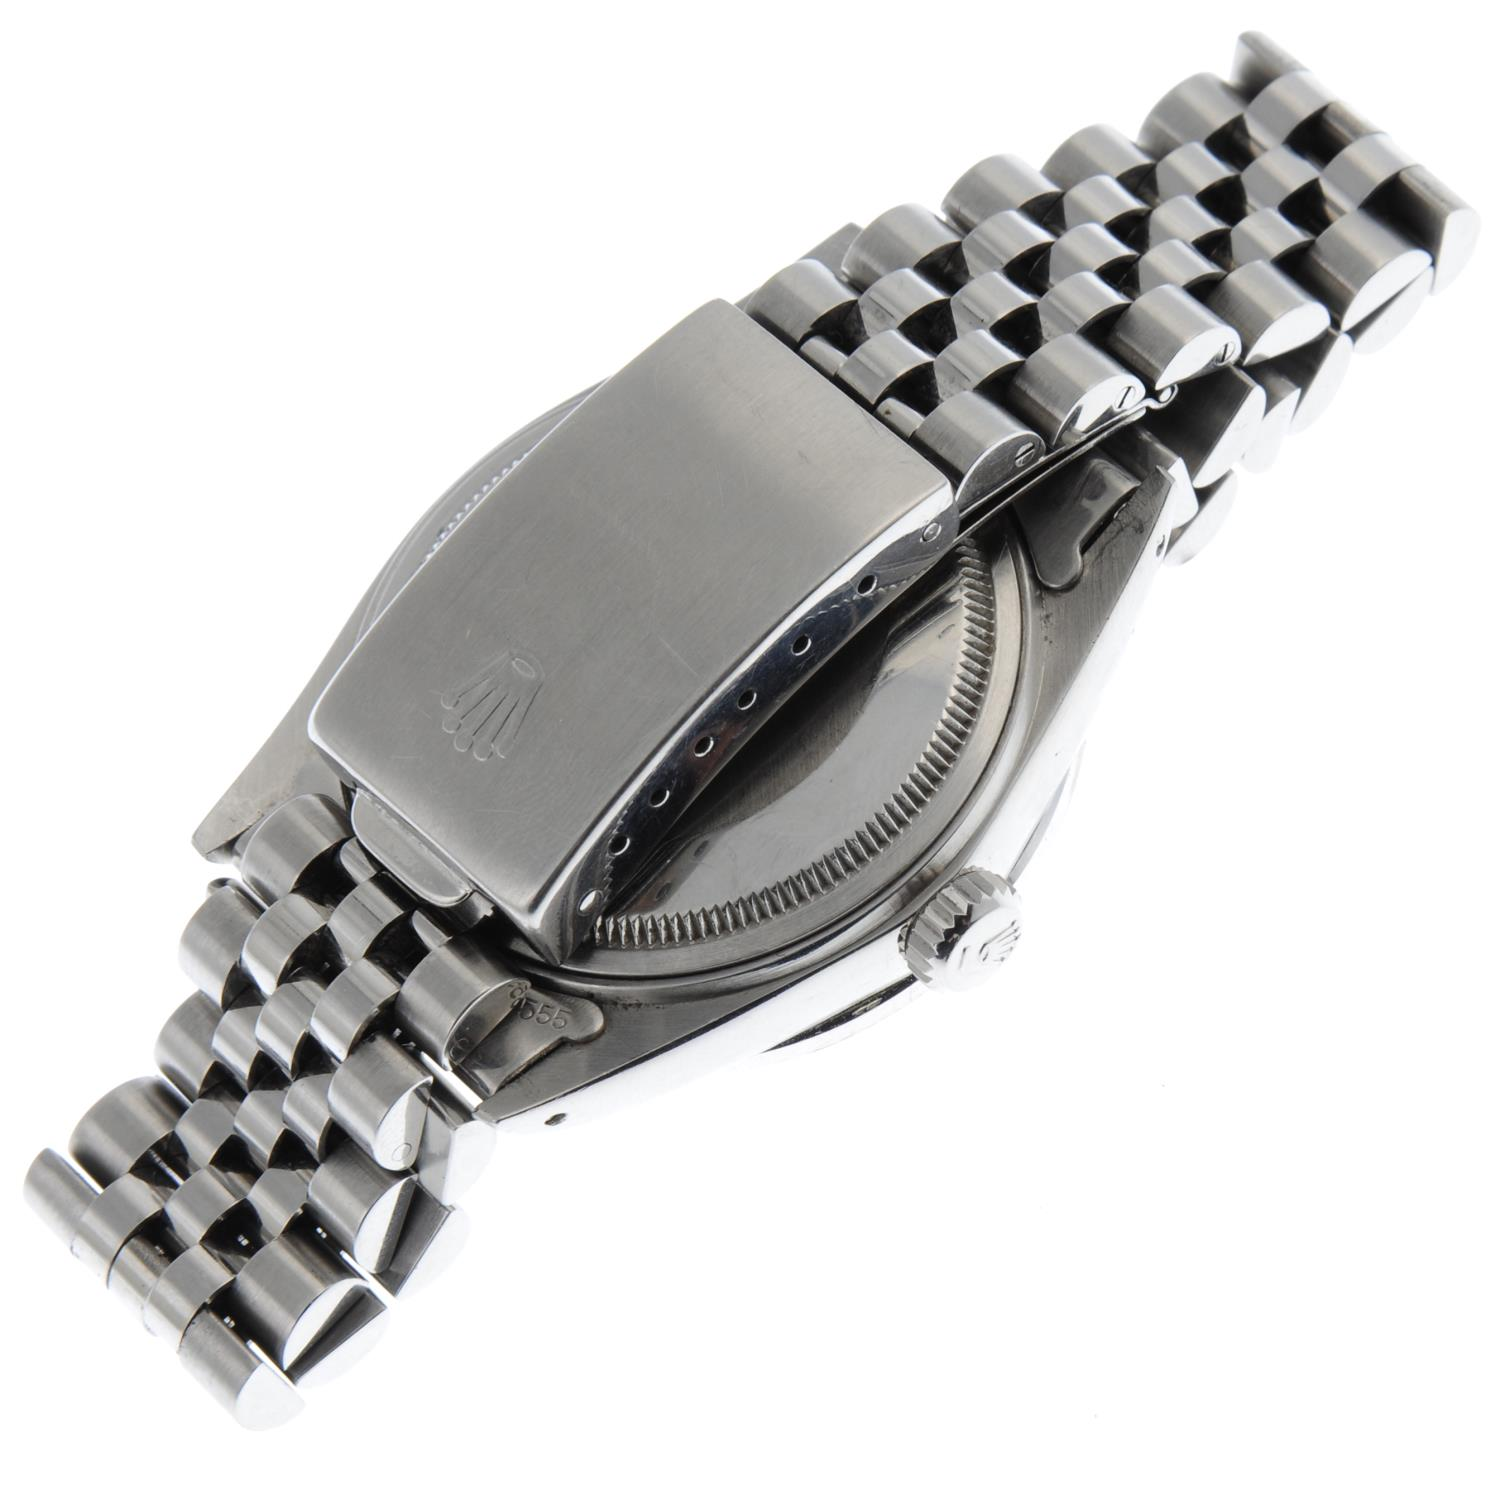 ROLEX - an Oyster Perpetual Datejust bracelet watch. - Image 5 of 5